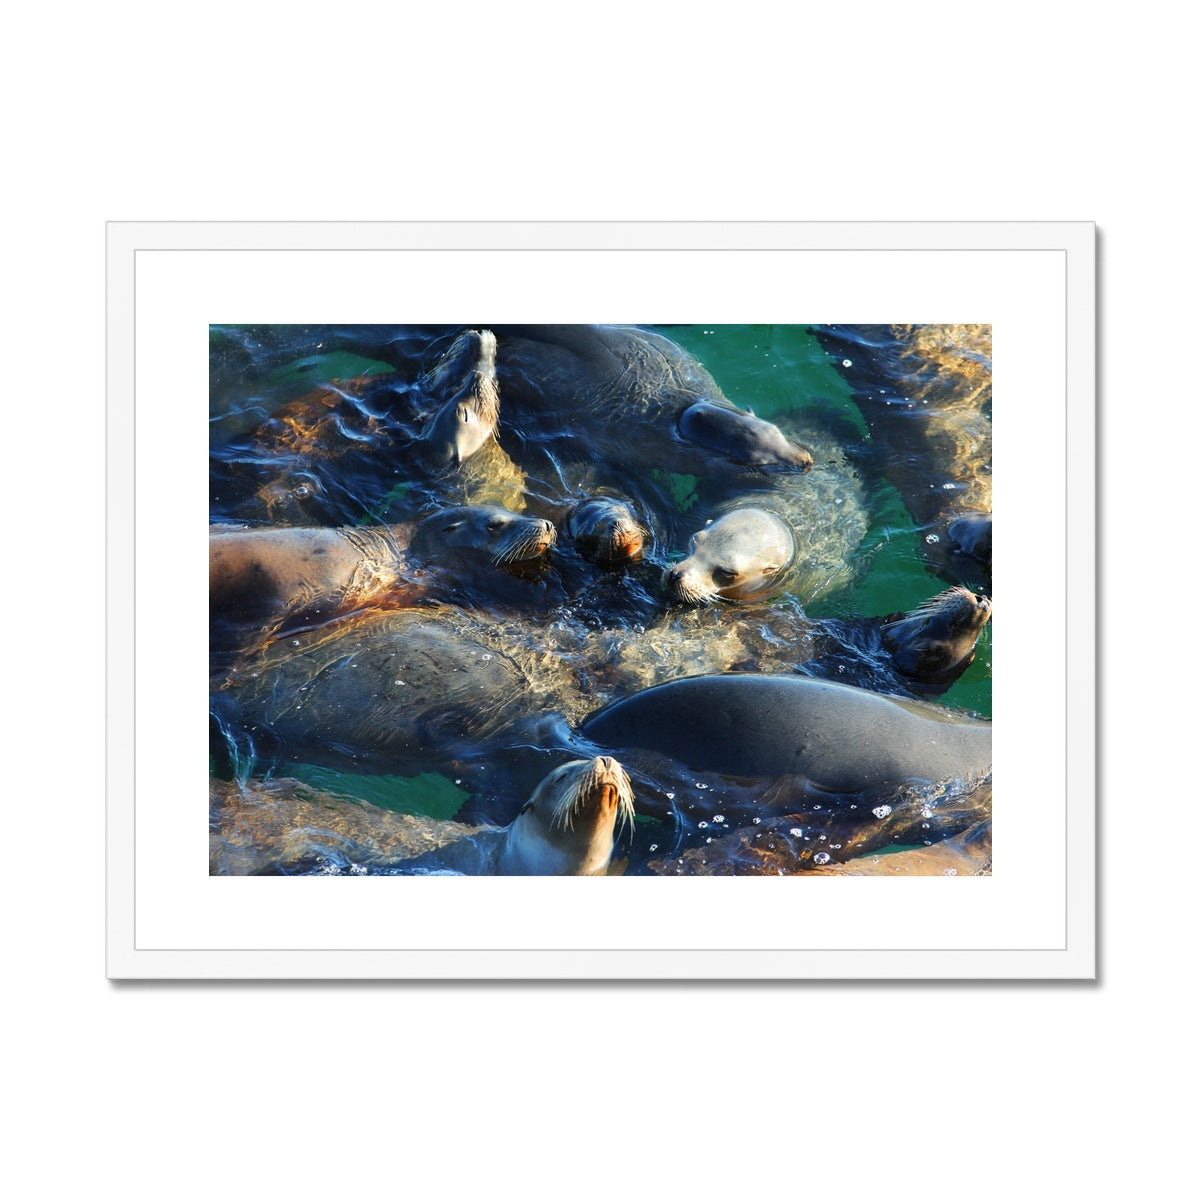 Seal Snuggles - California Framed & Mounted Print